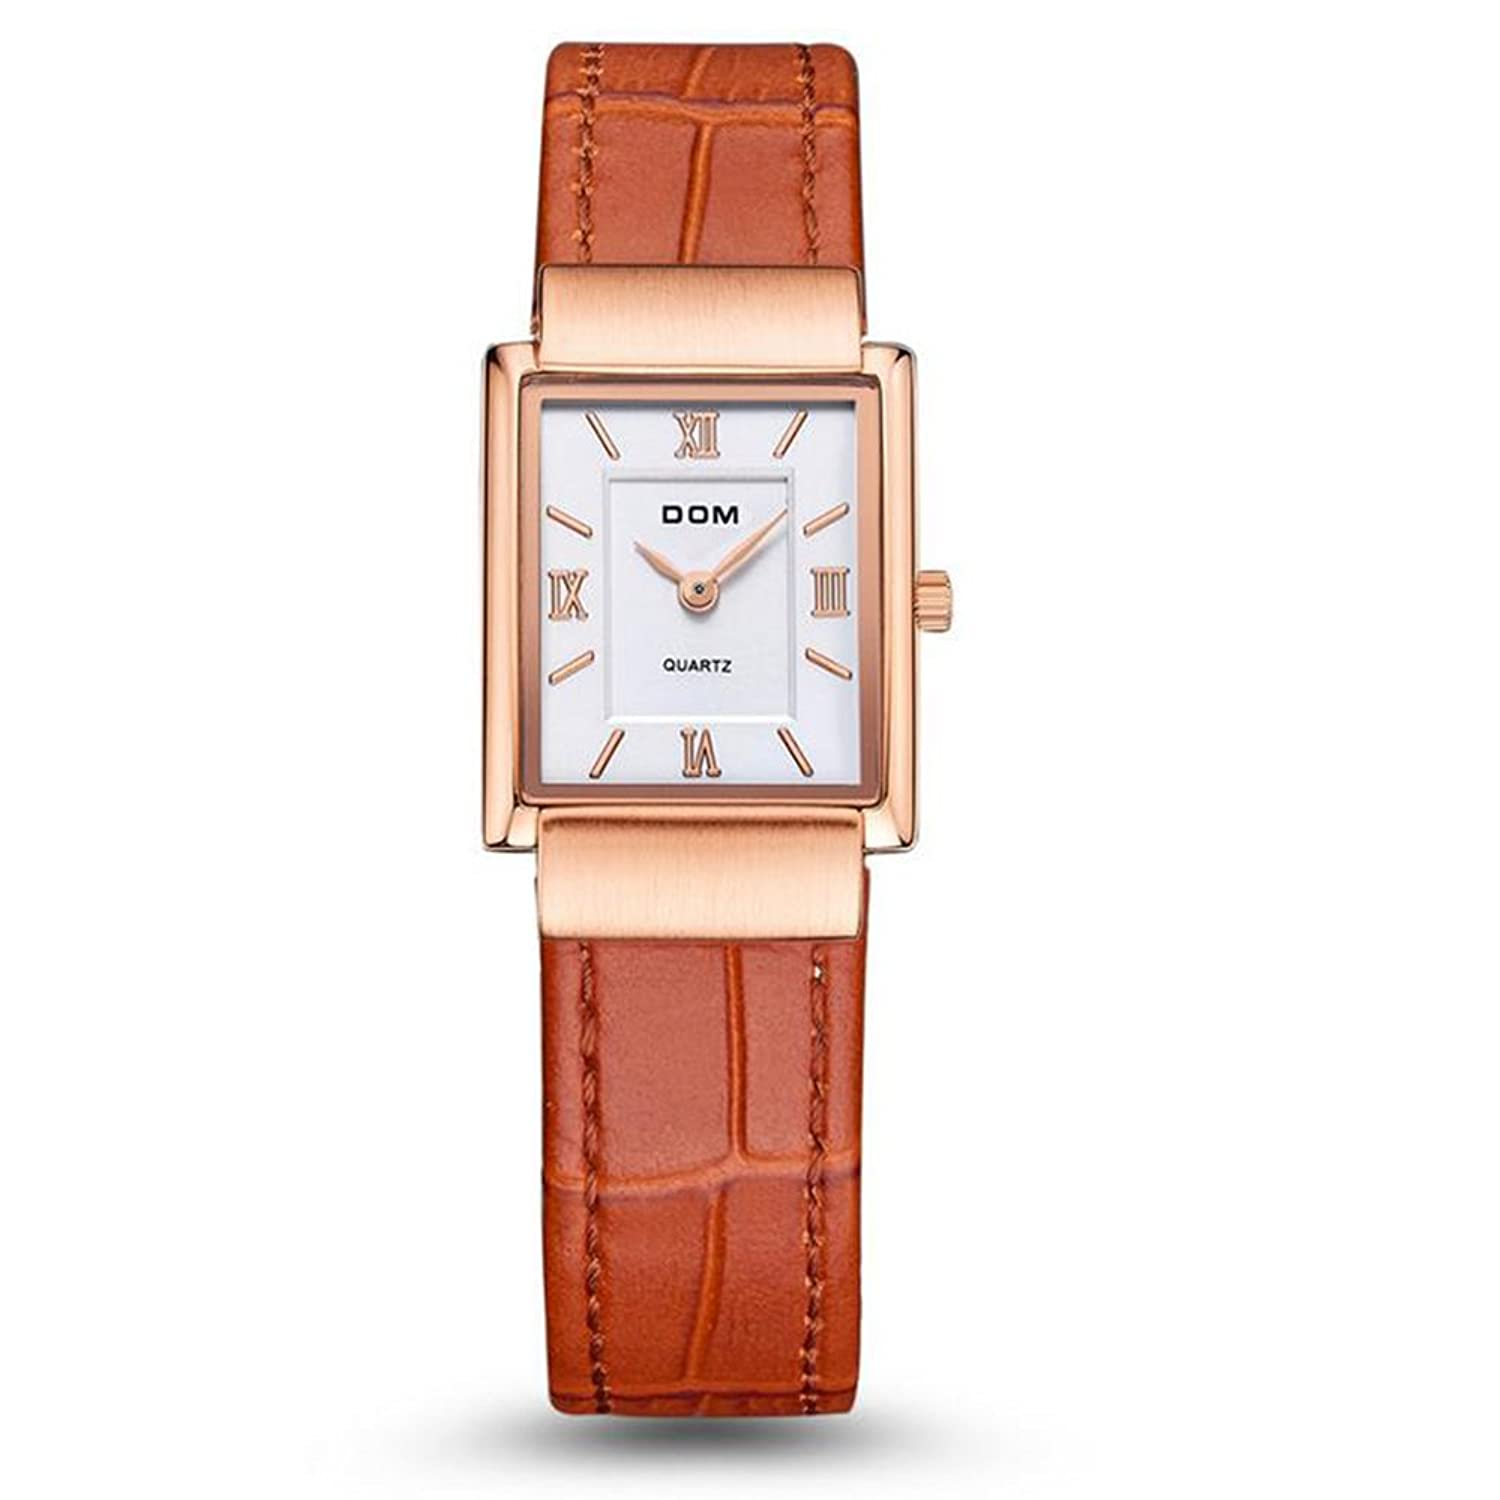 Amazon.com: Sheli Women Brown Leather Gold Tone Watch Luxury Brand Waterproof Style Quartz Square Watches: Watches